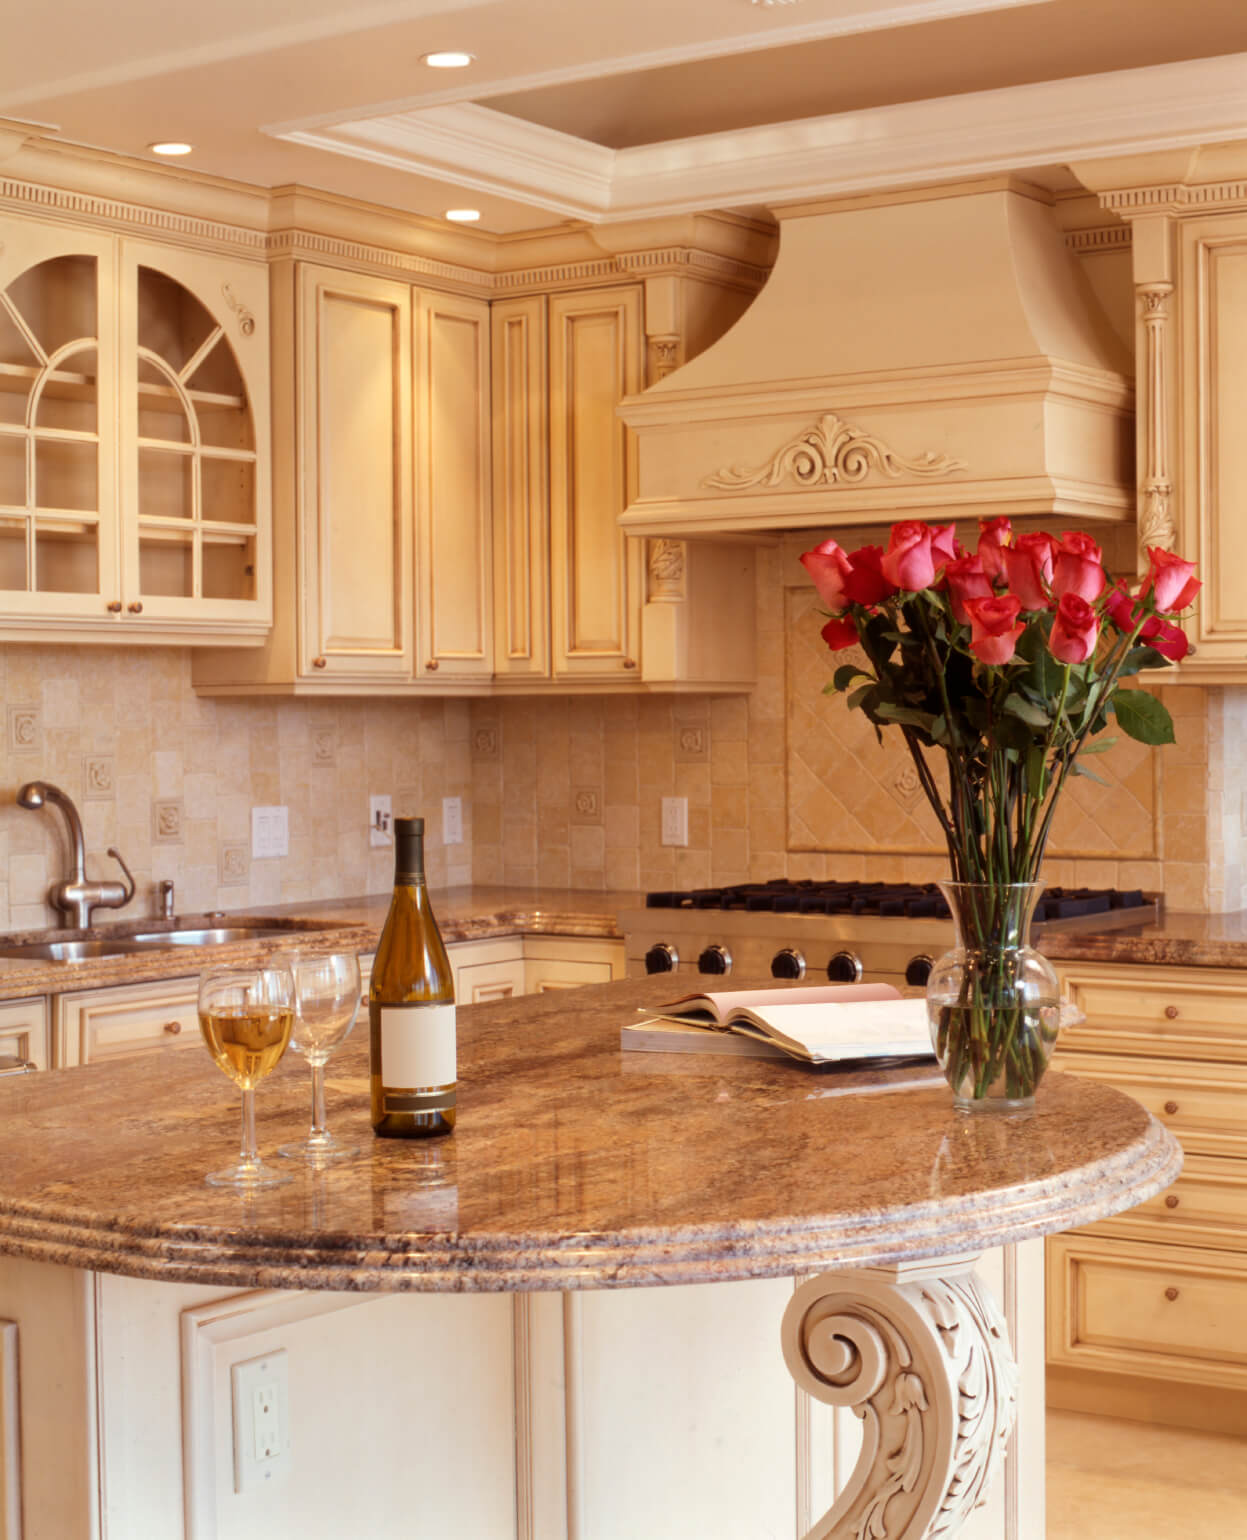 Lush beige tones throughout this kitchen, including filigreed wood island with rounded marble countertop.